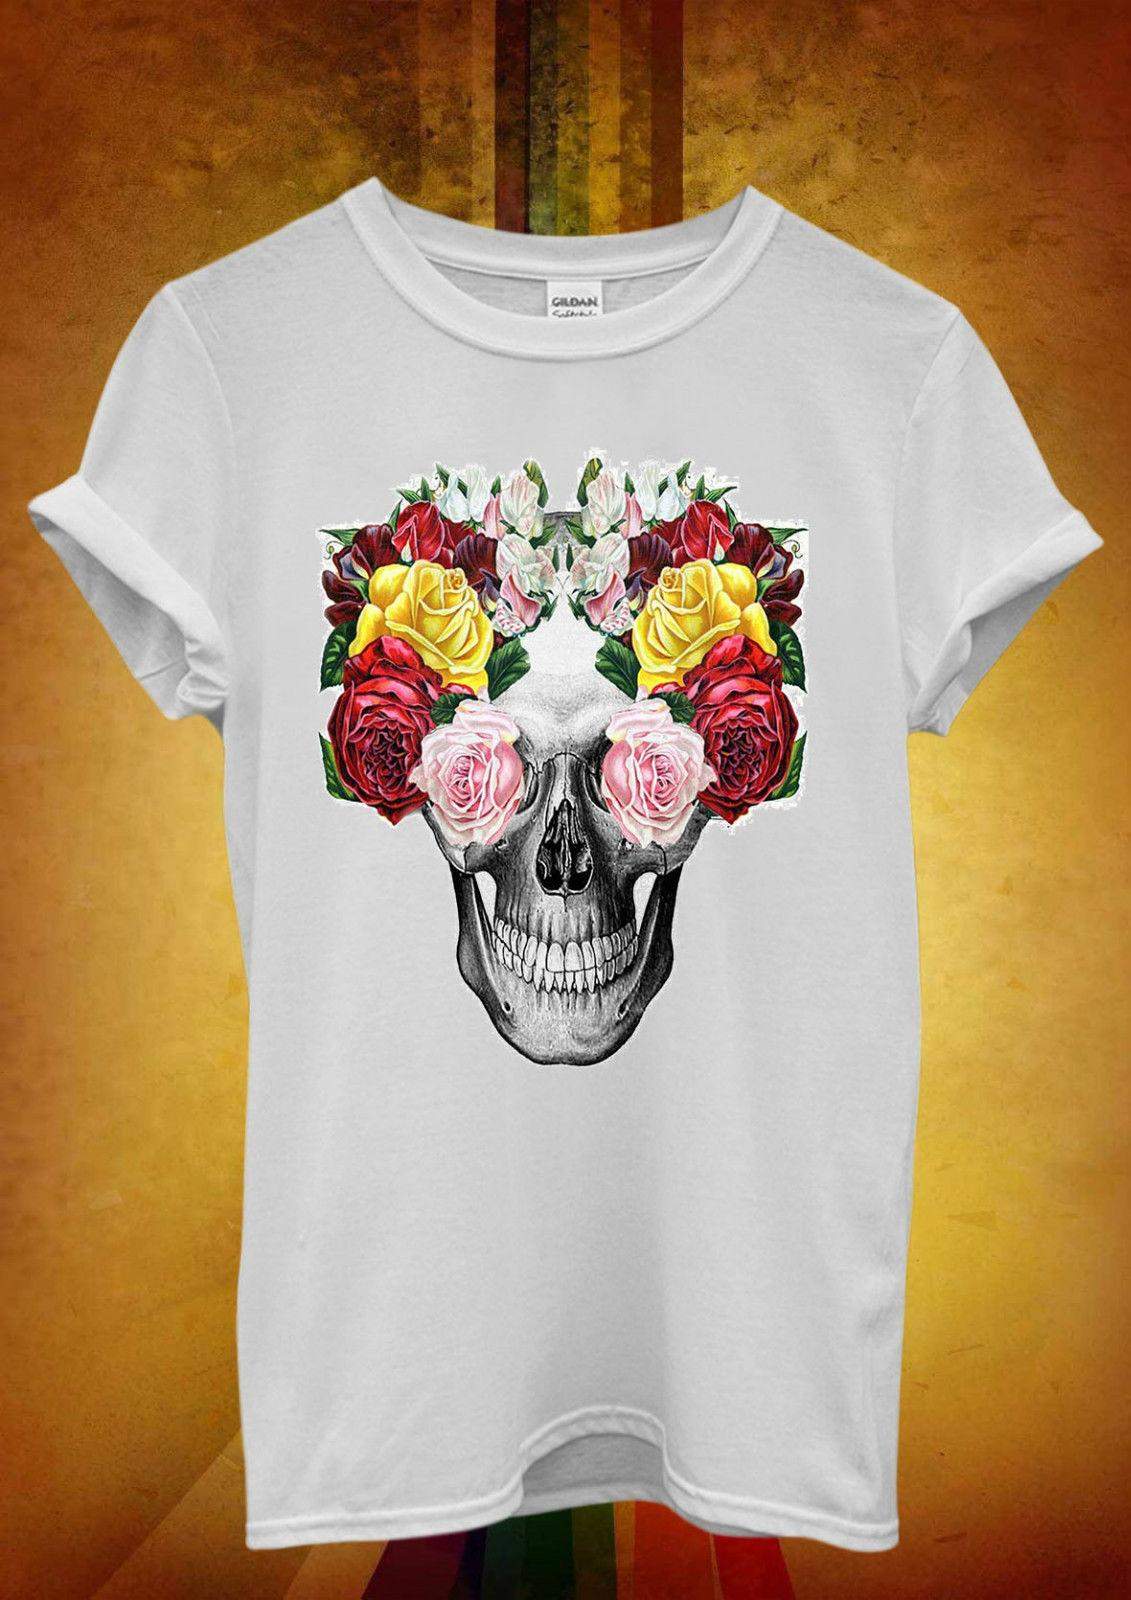 8dbdccb72b934 Floral Skull Roses Vintage Funny Men Women Unisex T Shirt Tank Top Vest  1290 2018 Funny Tee Cute T Shirts Man 100% Cotton Cool Random Graphic Tees  Quirky T ...